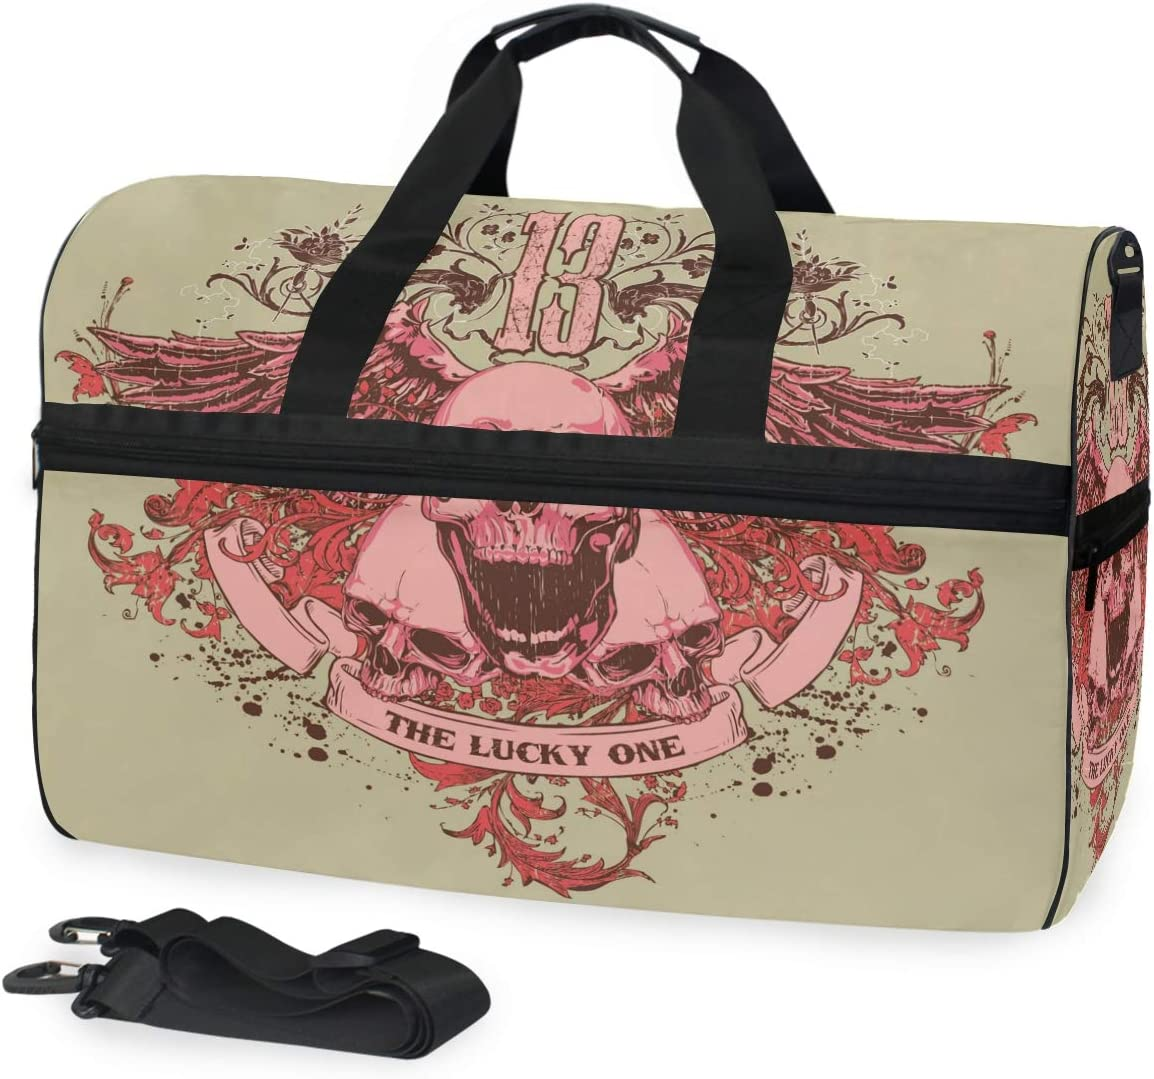 FANTAZIO Pink Skull With Wings Sports Bag Packable Travel Duffle Bag Lightweight Water Resistant Tear Resistant